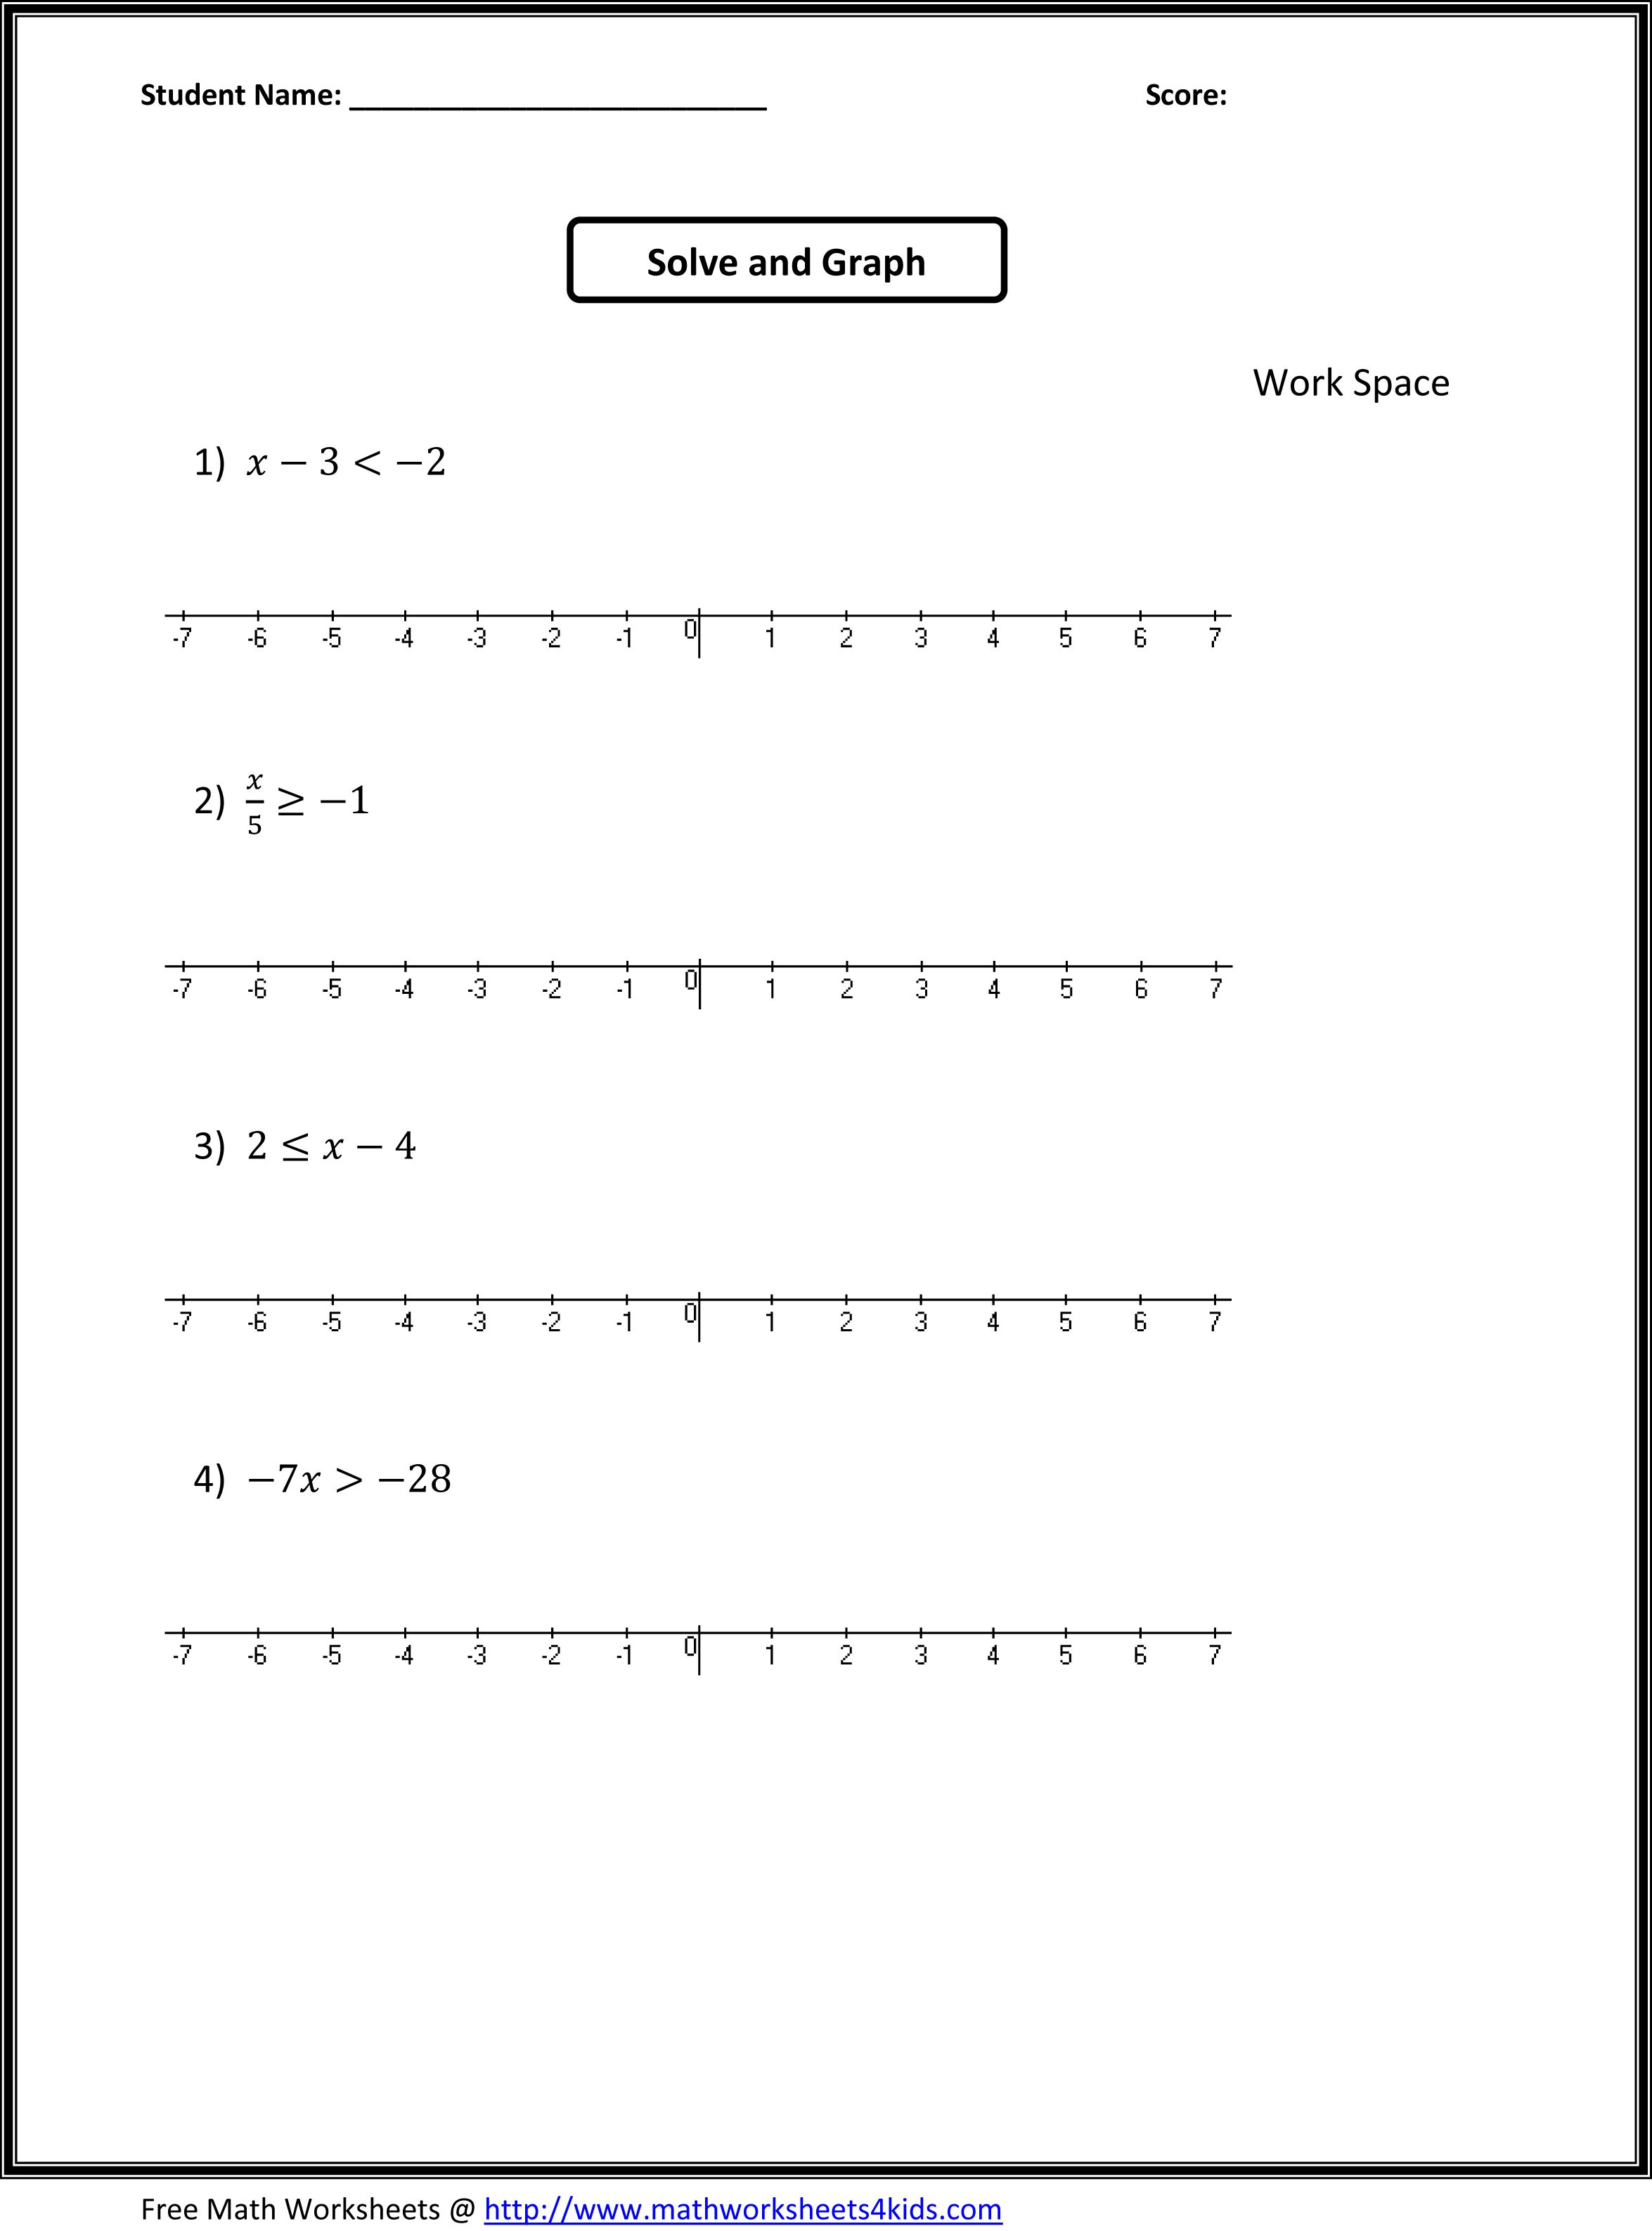 Uncategorized Math Worksheets For Grade 6 Algebra – Grade 6 Math Practice Worksheets